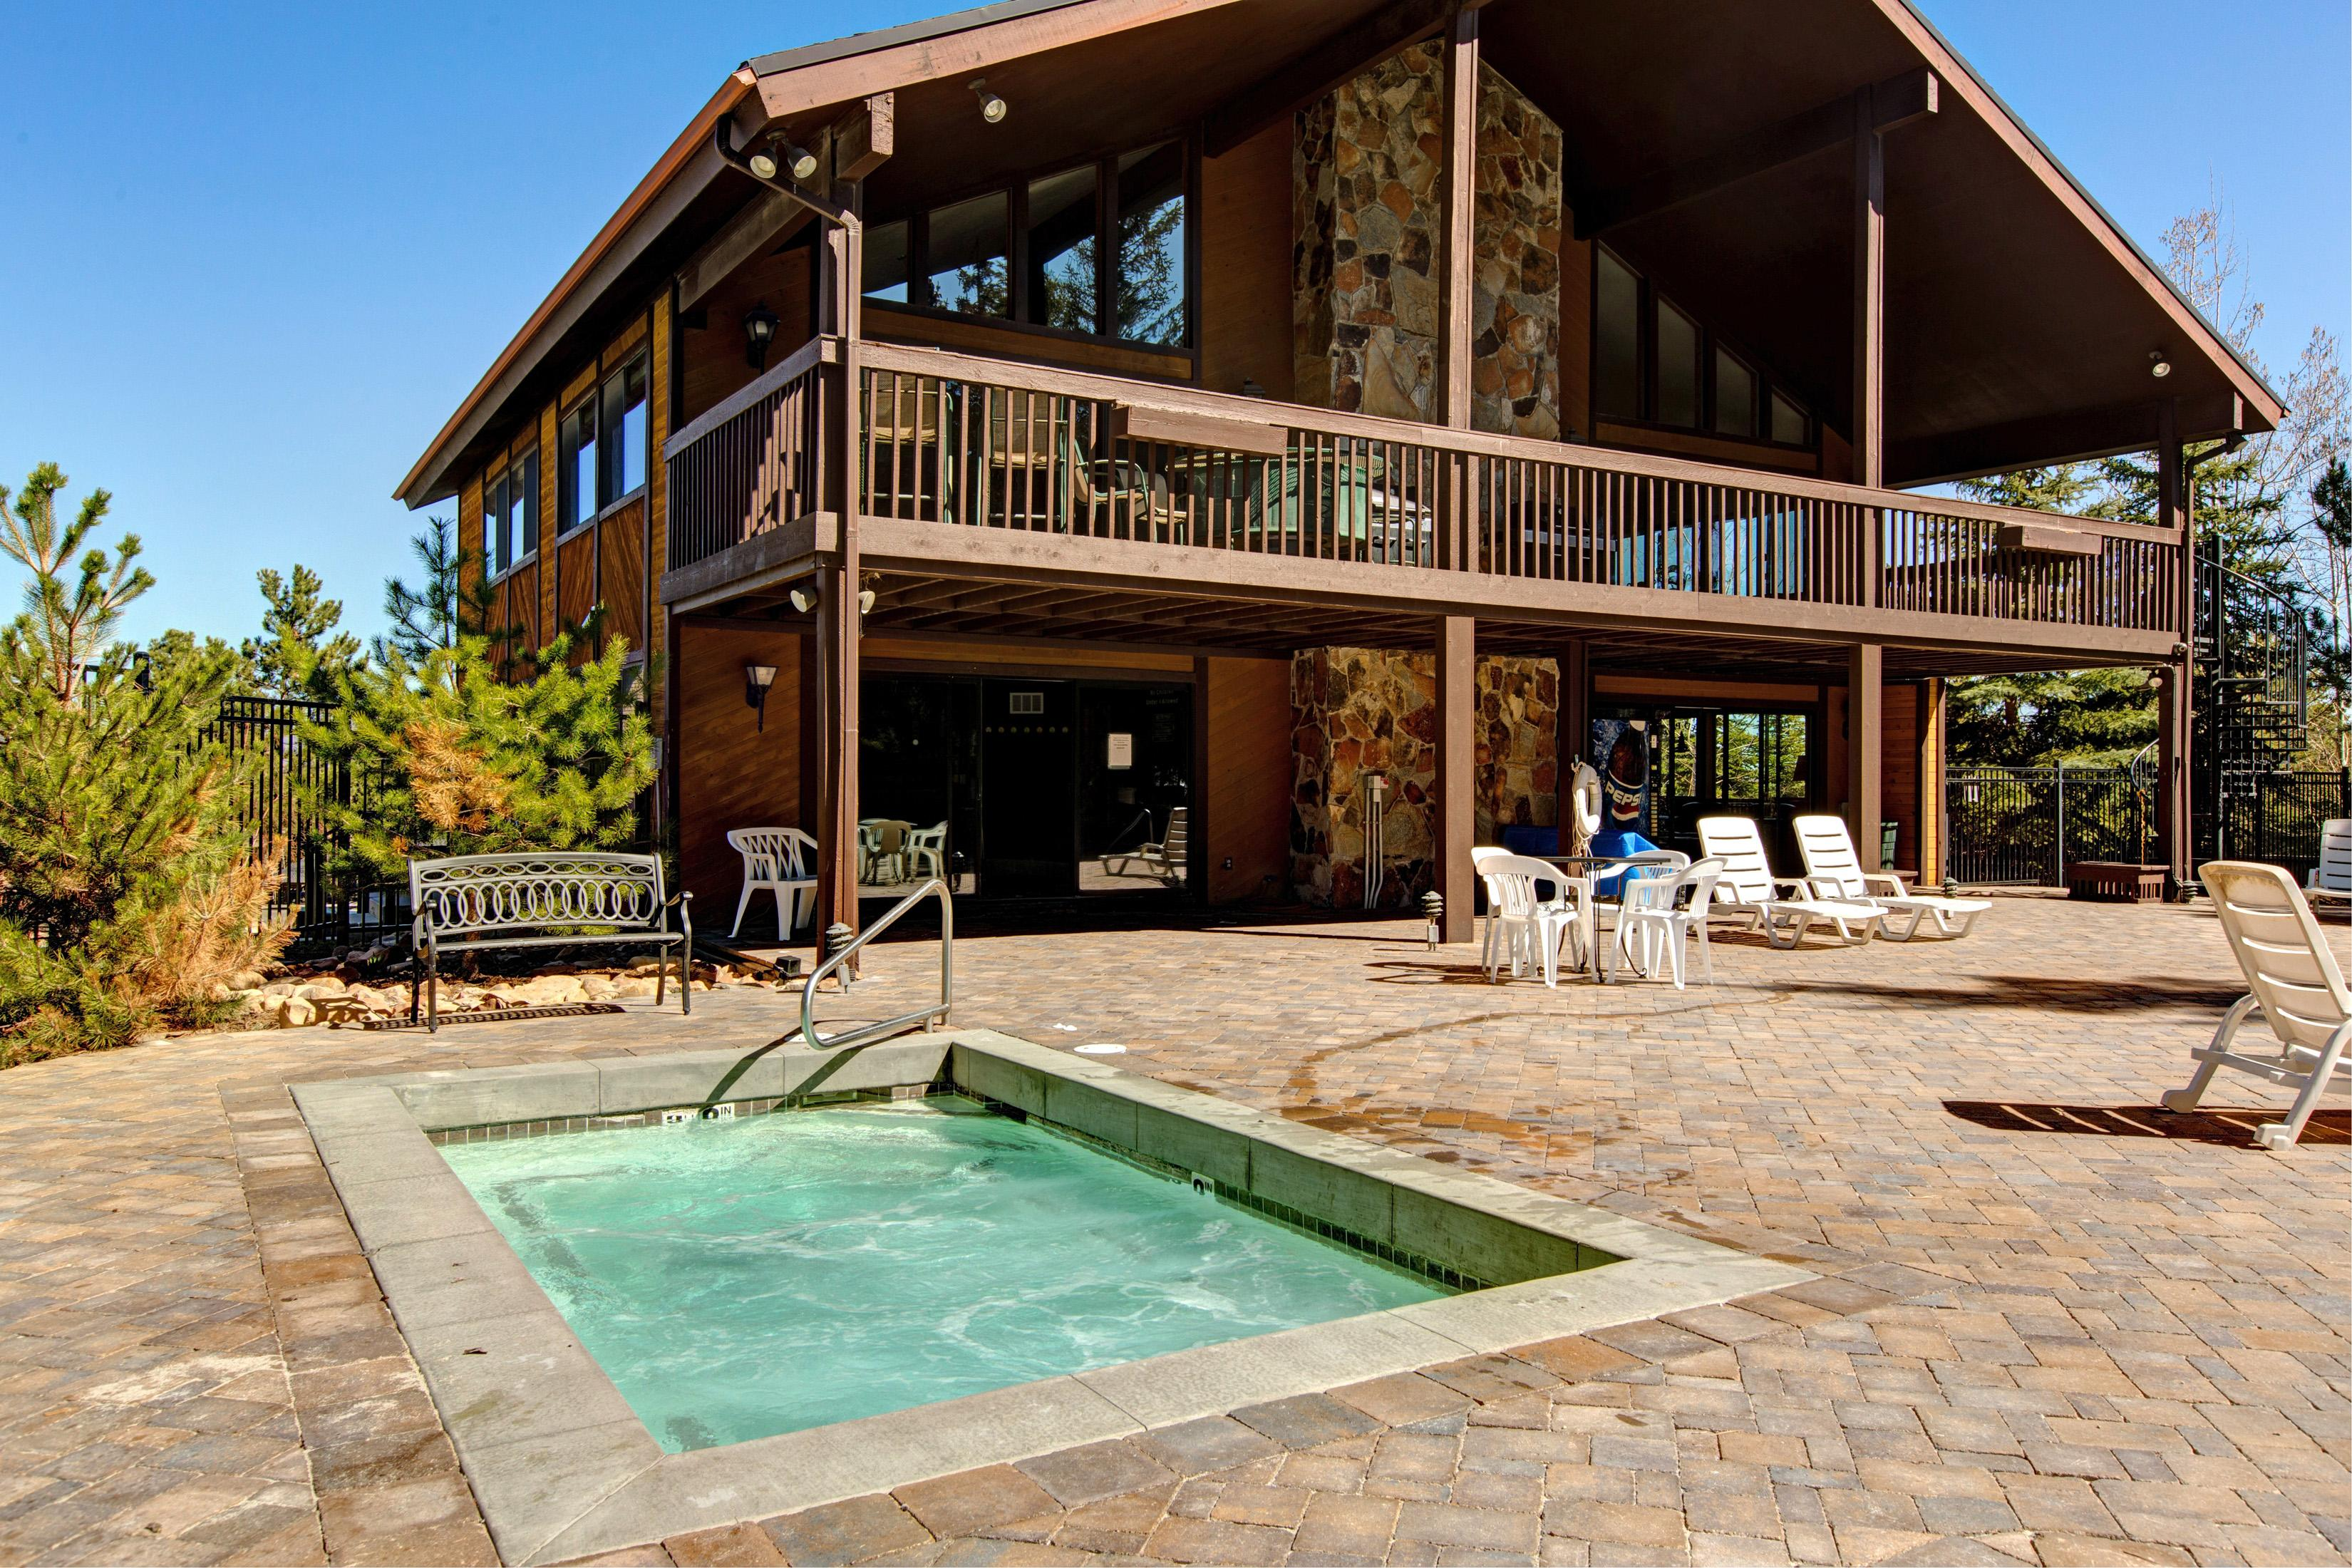 Relax in the shared hot tub after a fun-filled day exploring the mountain.